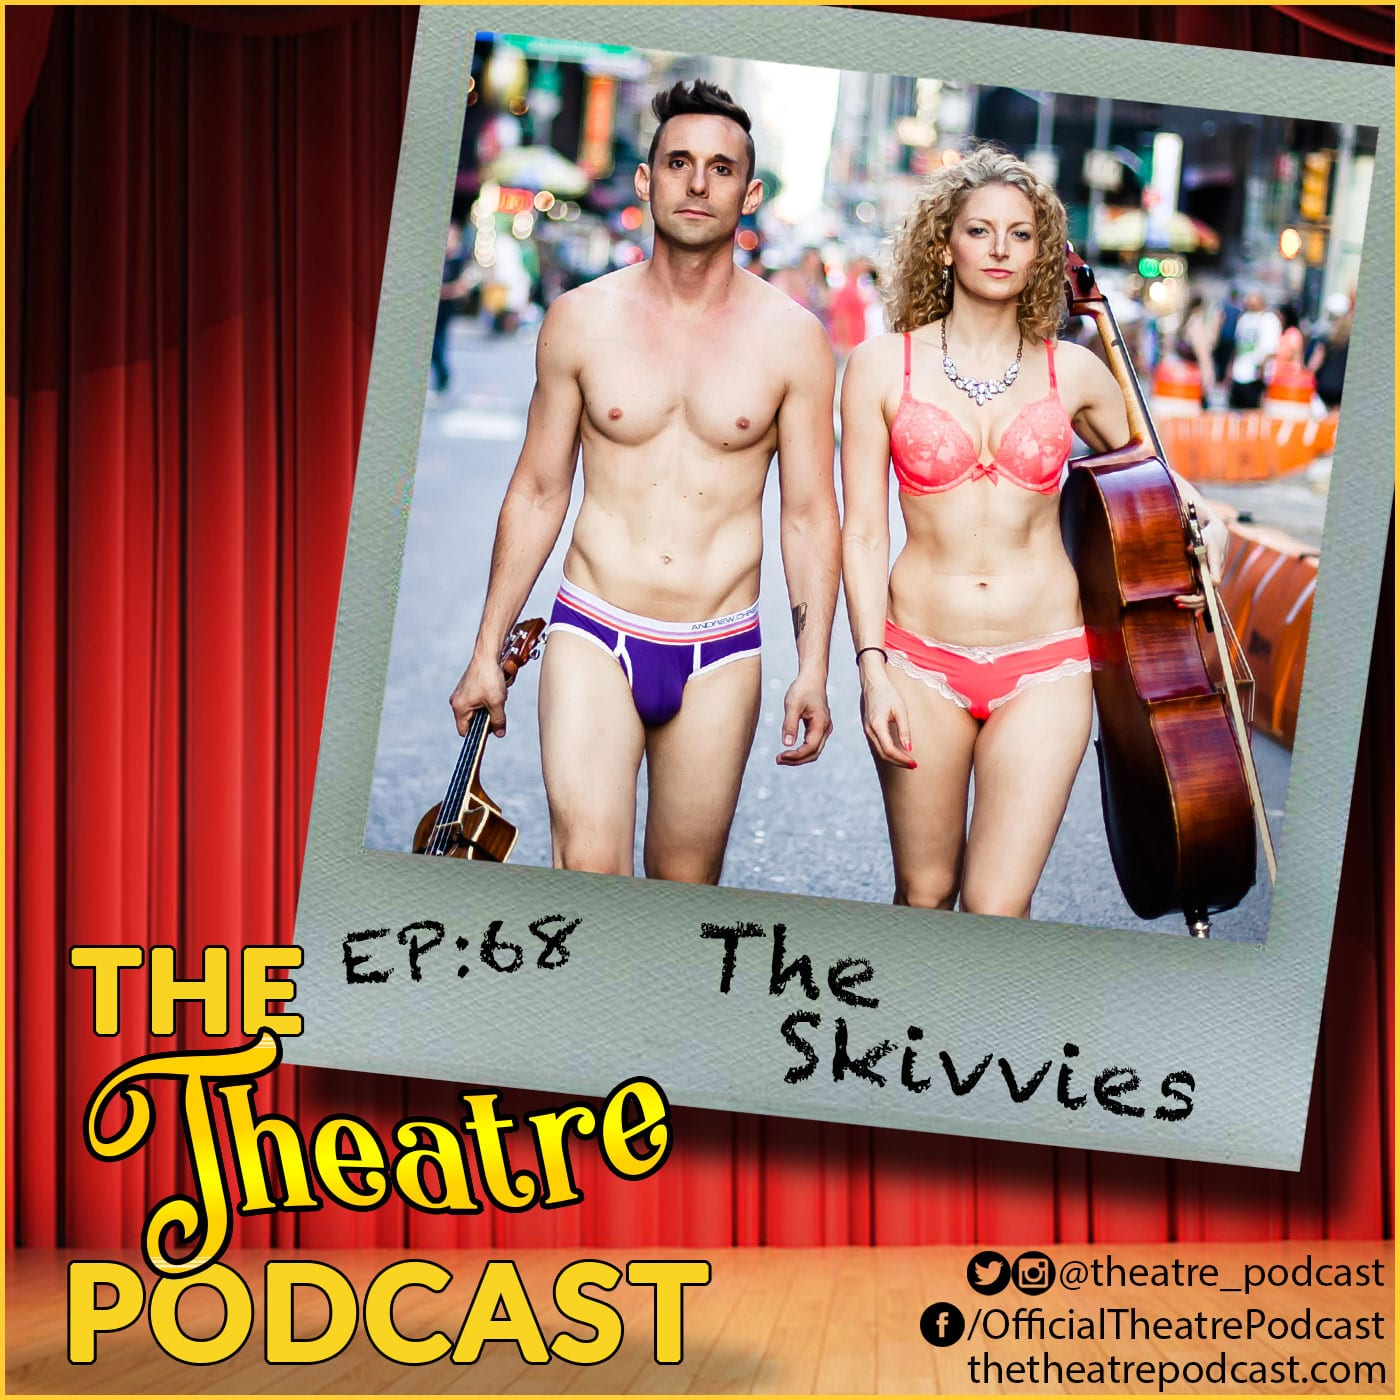 The Theatre Podcast Episode 68 The Skivvies